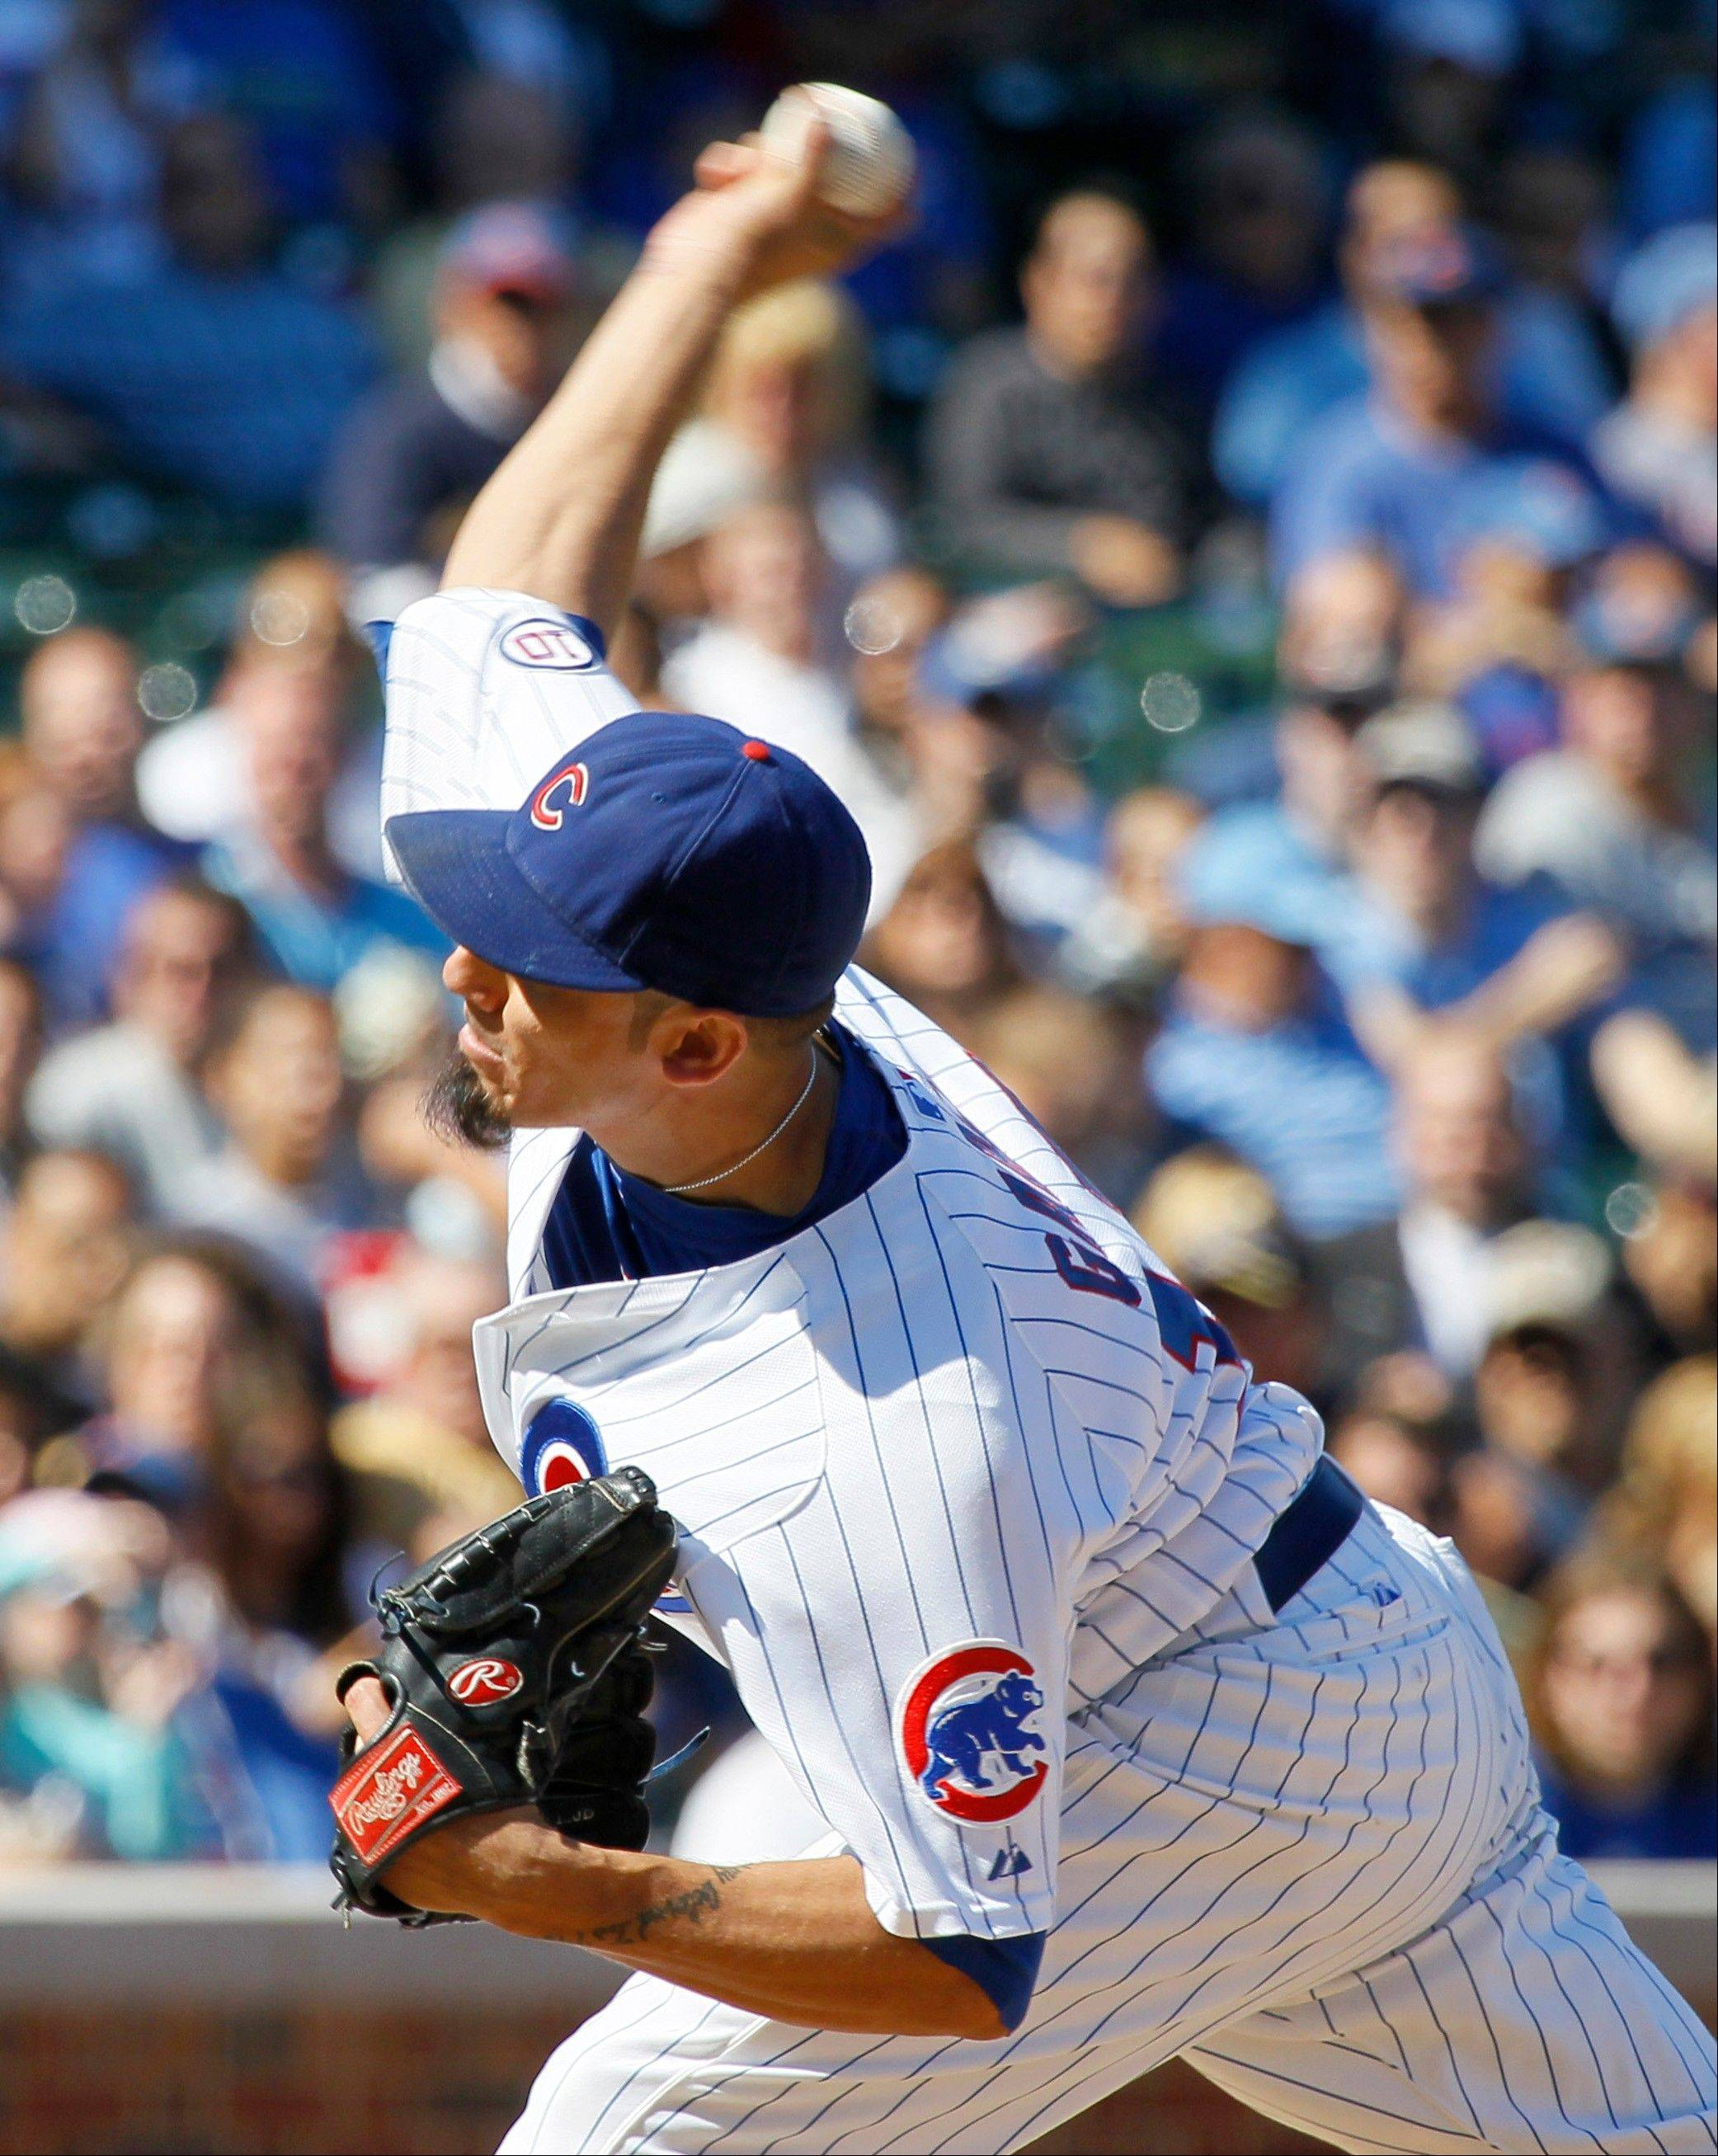 Cubs starting pitcher Matt Garza delivers during the second inning of a baseball game against the Milwaukee Brewers, Wednesday, Sept. 21, 2011, in Chicago.